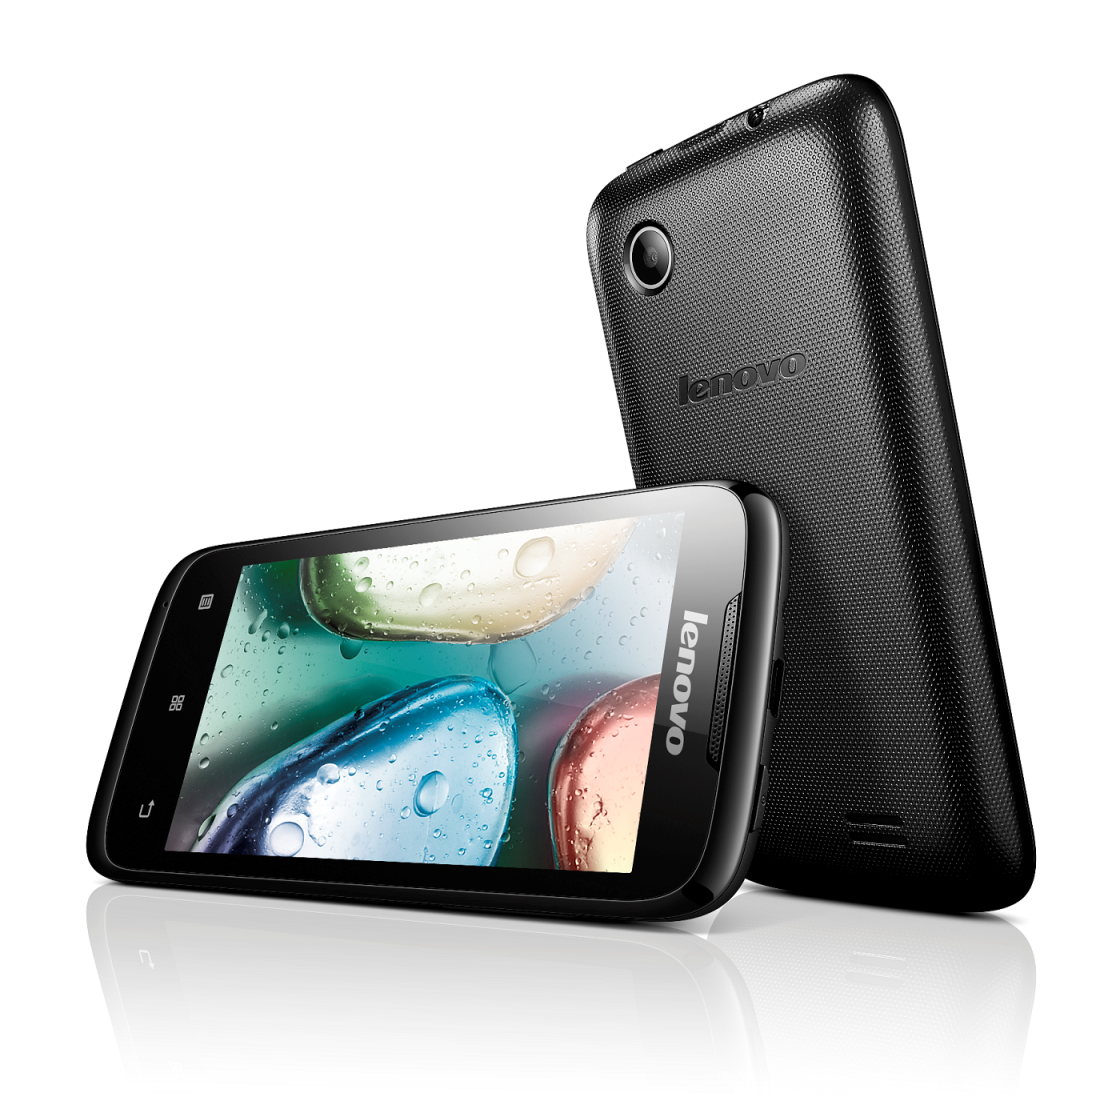 Lenovo A369i Specs Review Release Date Phonesdata A328 4gb Black Pictures